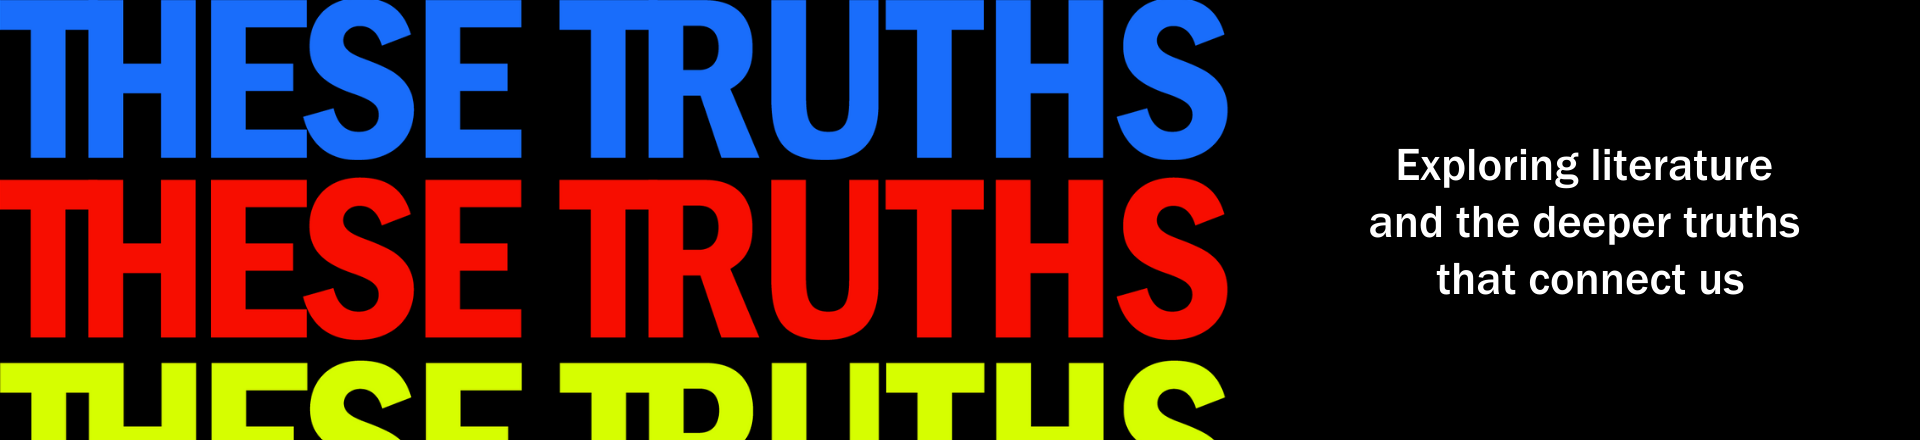 These Truths: Exploring literature and the deeper truths that connect us